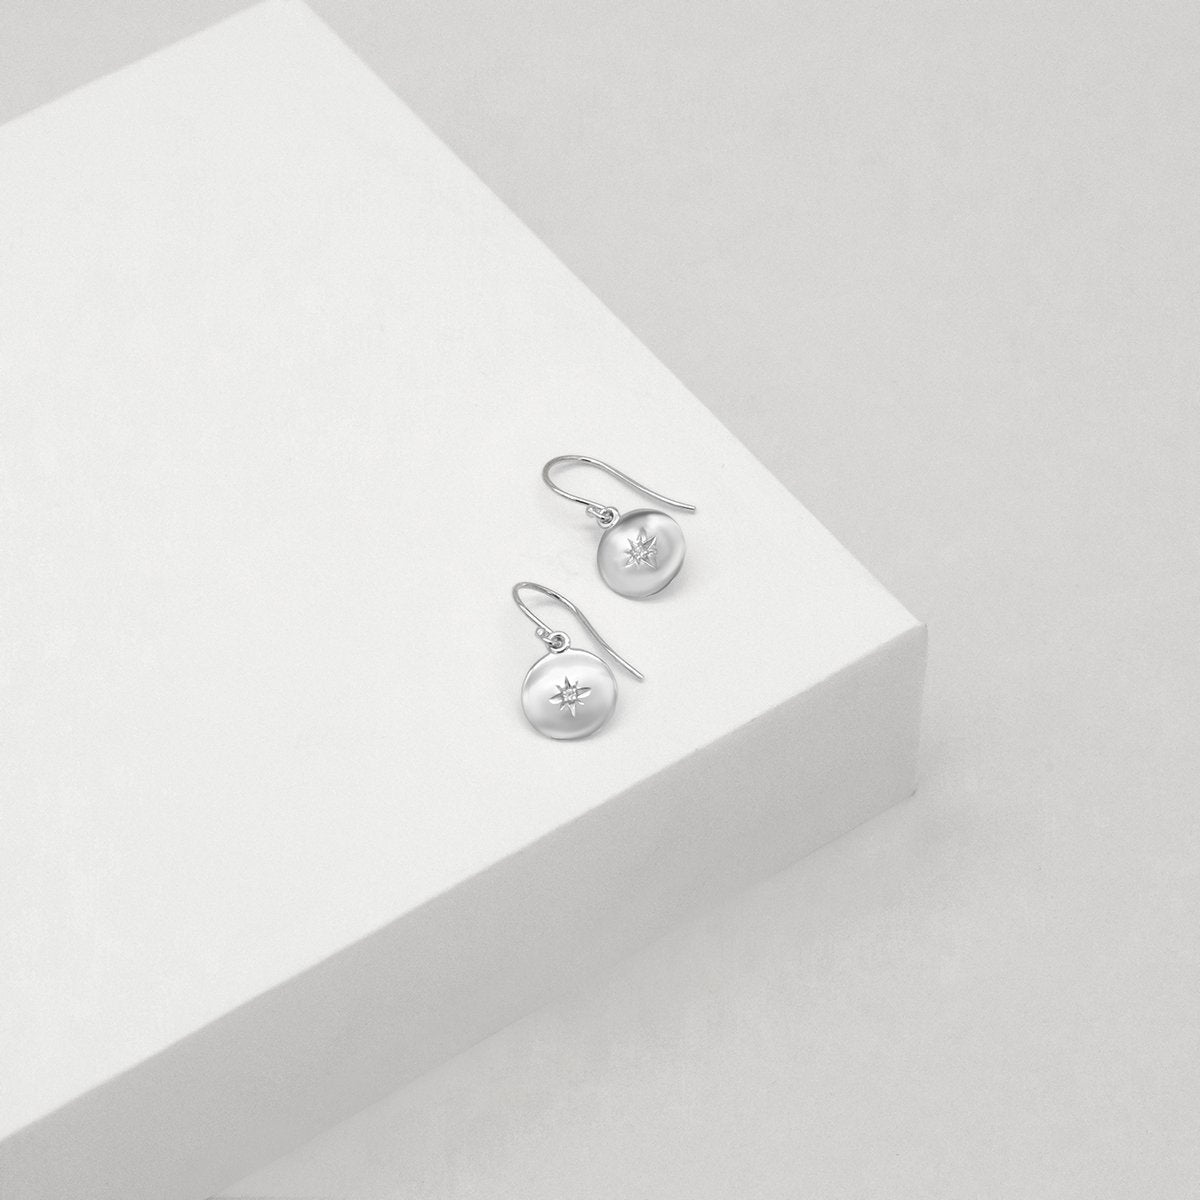 North Star Disc Earrings - Sterling Silver